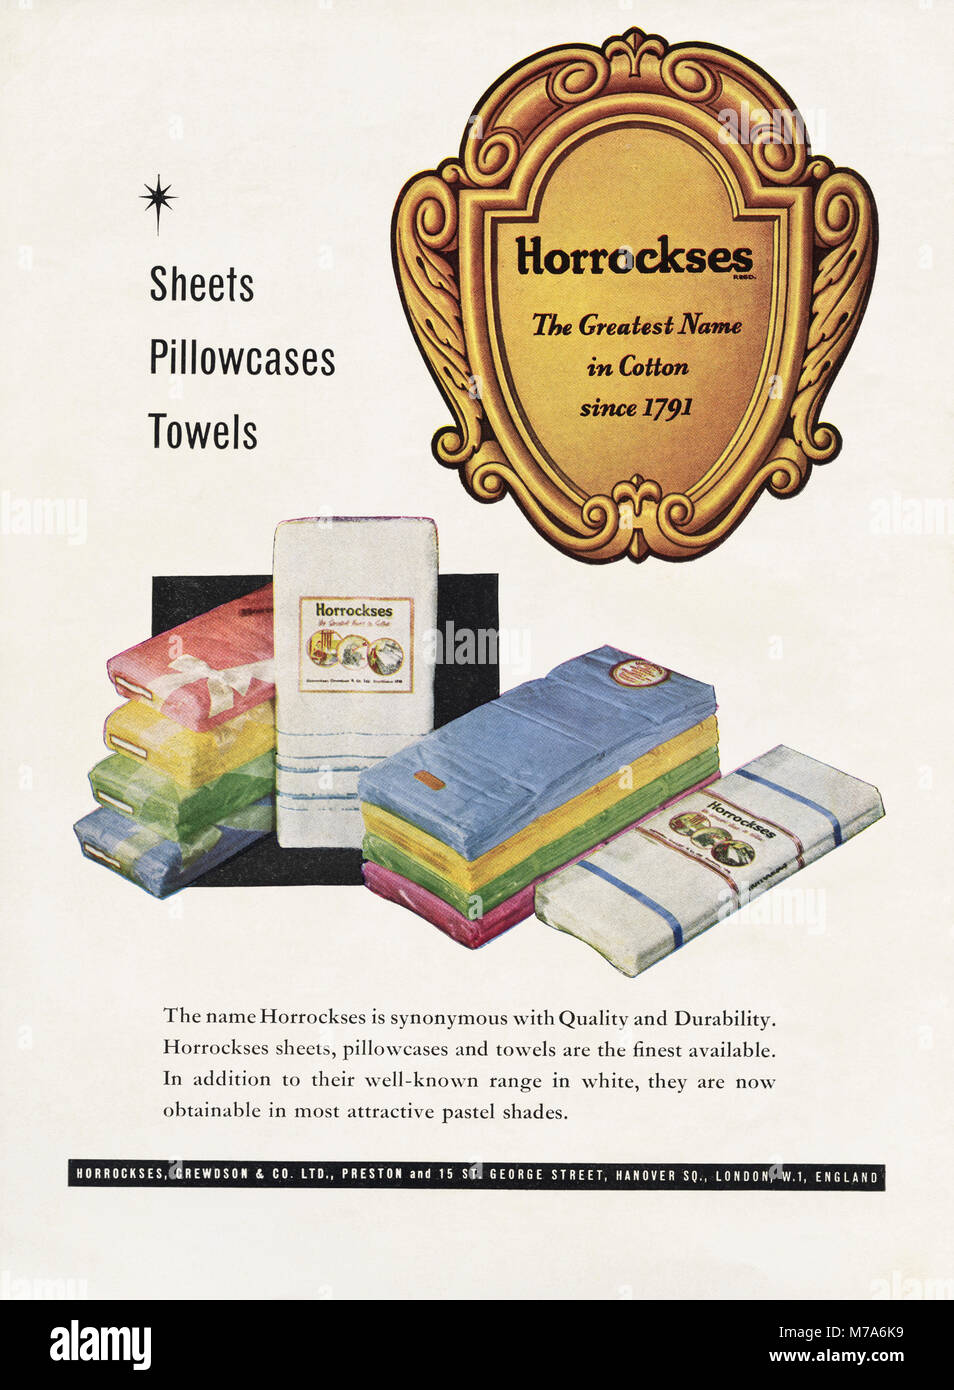 medium resolution of 1950s original old vintage advertisement advertising cotton sheets pillowcases towels by horrockses in magazine